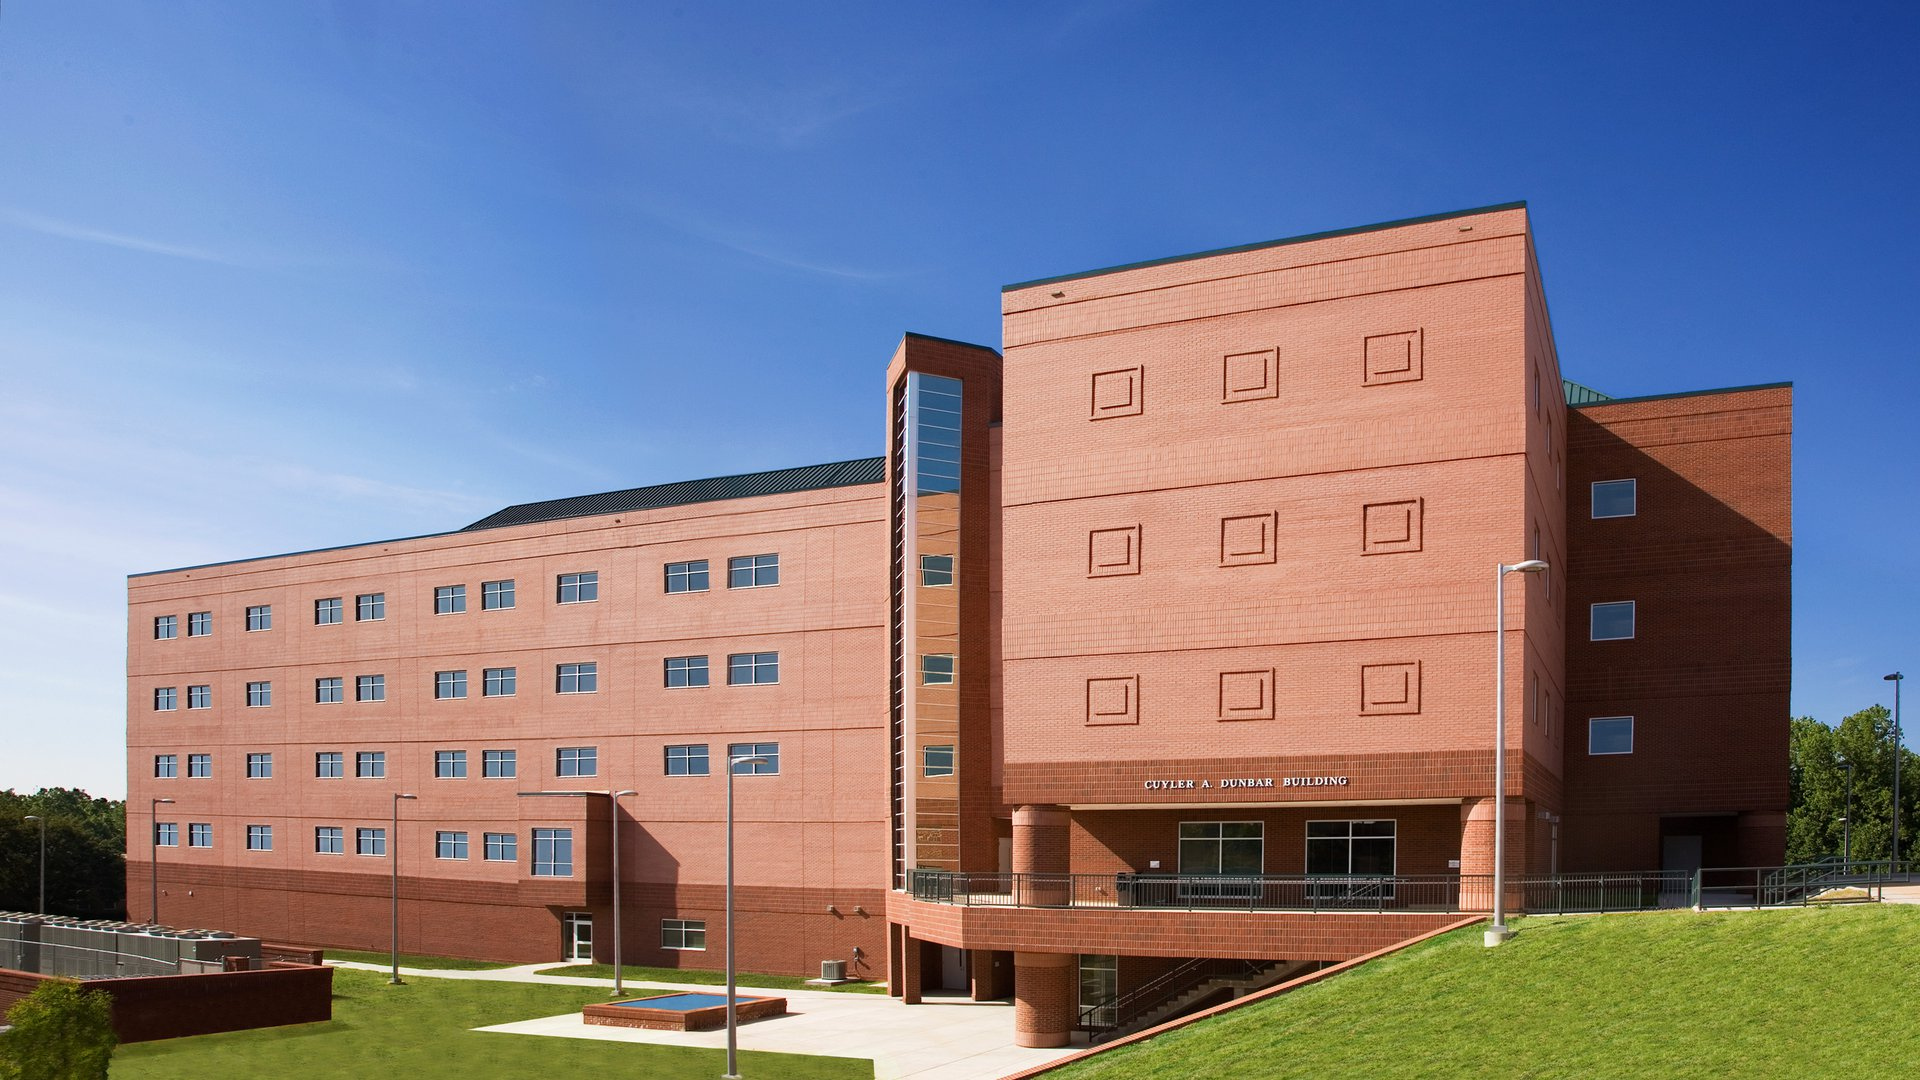 10 Buildings at Catawba Valley Community College You Need to Know